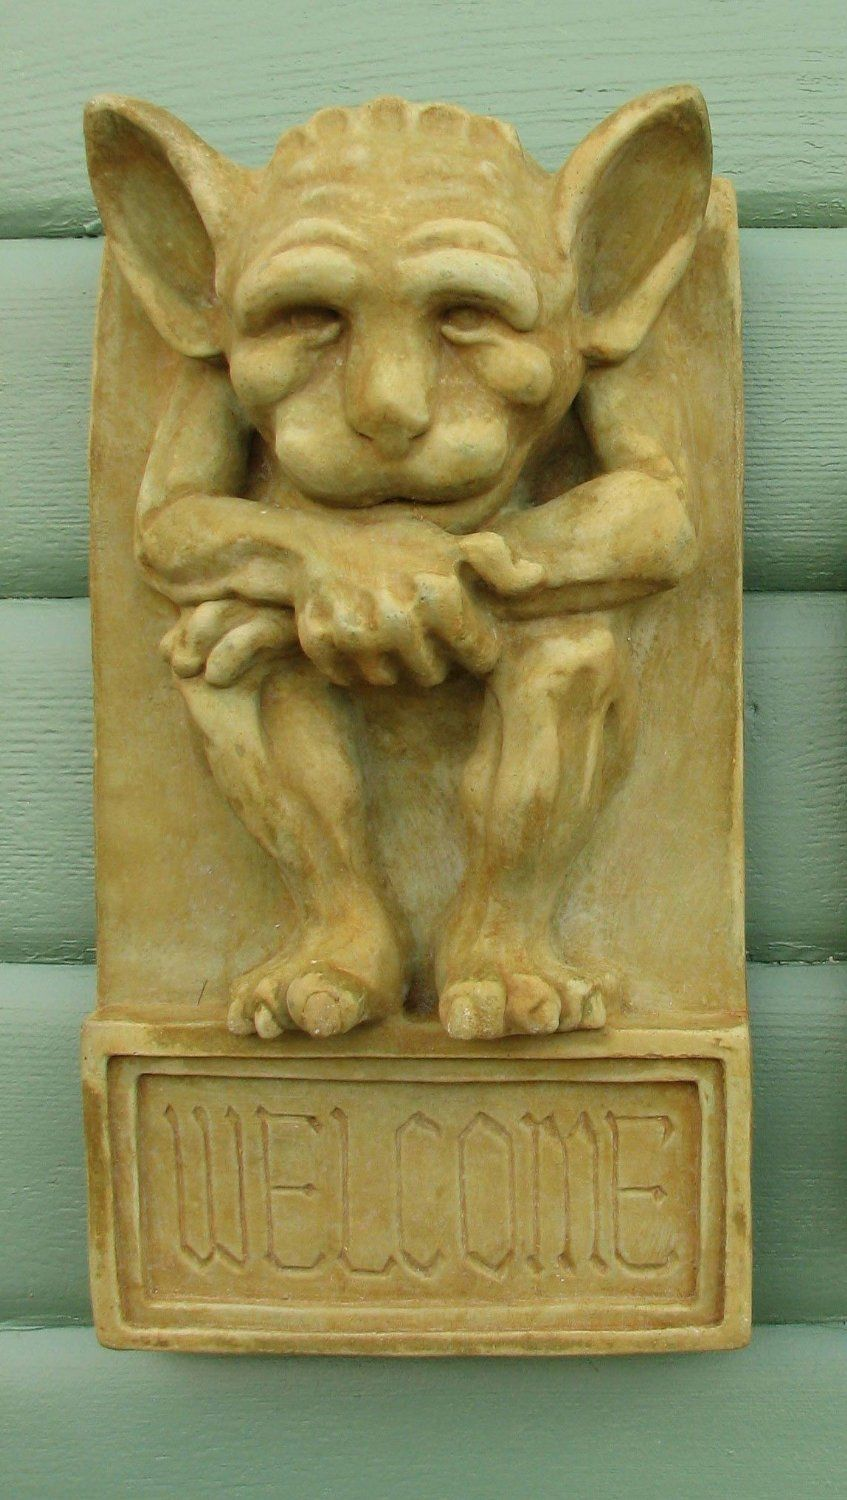 Amazon.com : Gargoyle WELCOME PLAQUE 16.5 GREEN-BROWN STAIN Outdoor ...